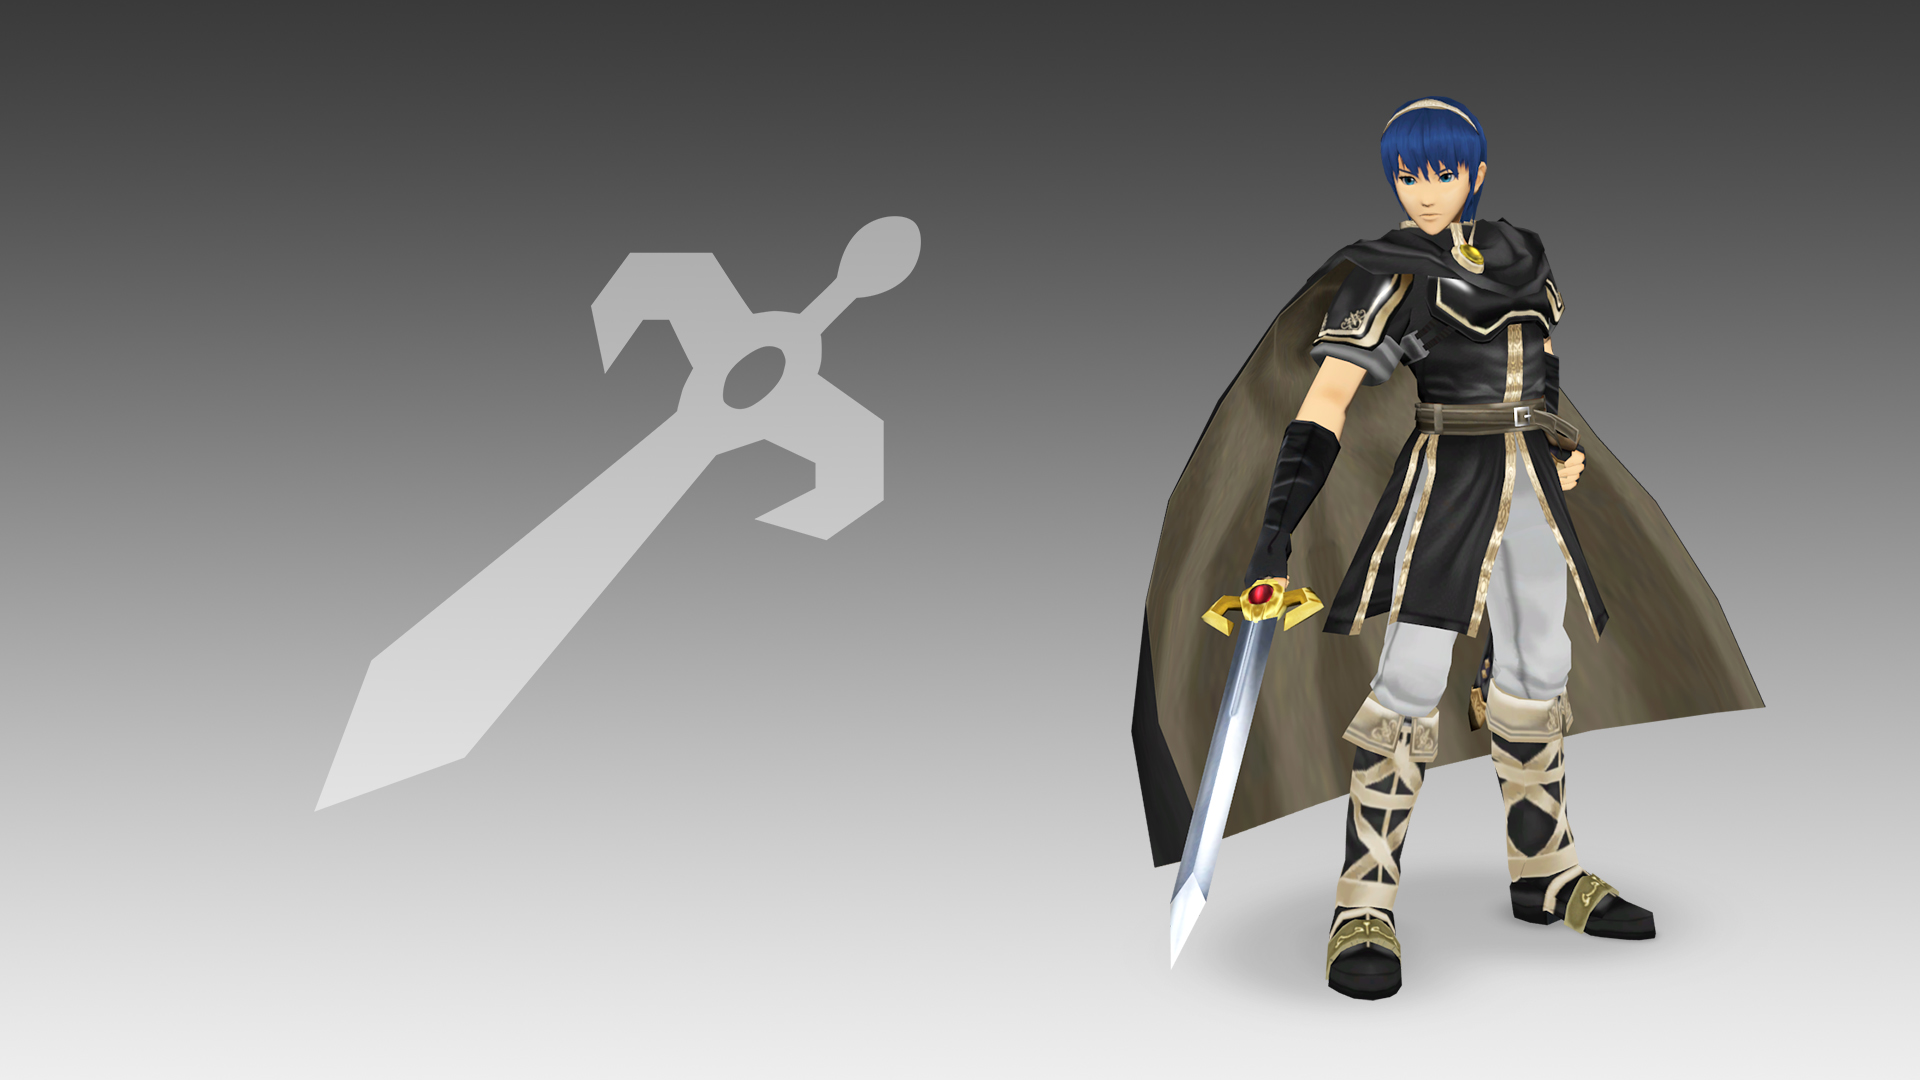 marth smash 3 wallpaper pack by tailsmiles249 on